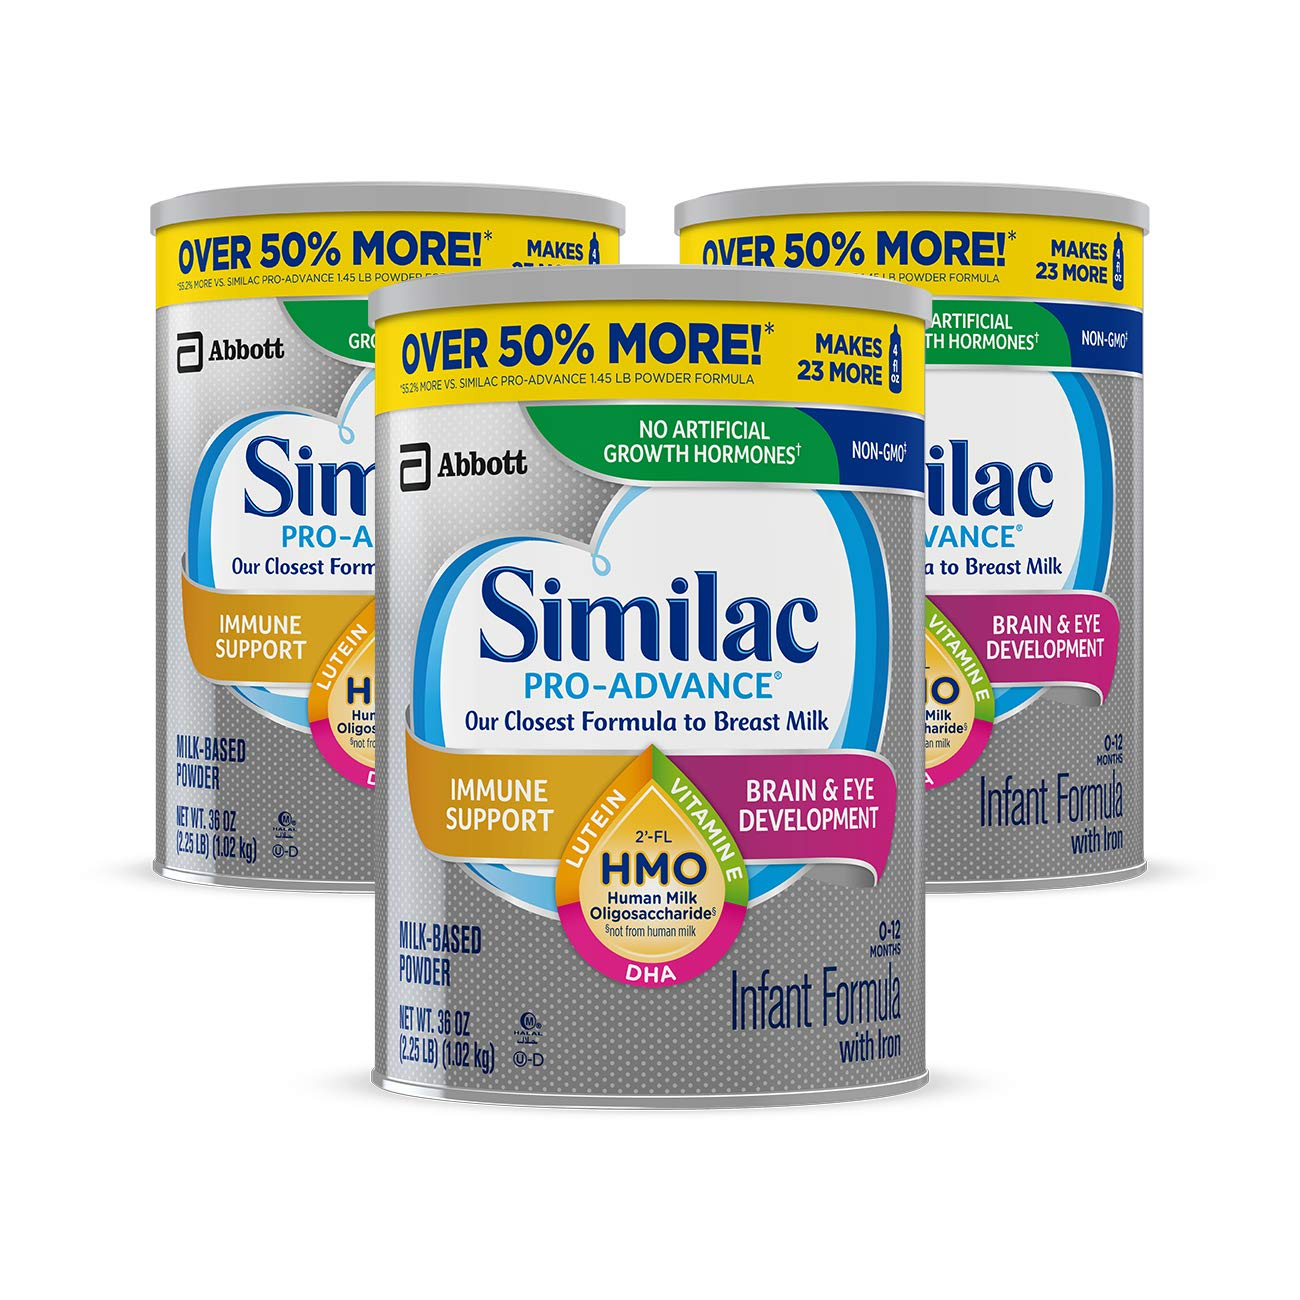 Similac Pro-Advance Non-GMO Infant Formula with Iron, with 2'-FL HMO, for Immune Support, Baby Formula, Powder, 36 oz, 3 Count (One-Month Supply $79